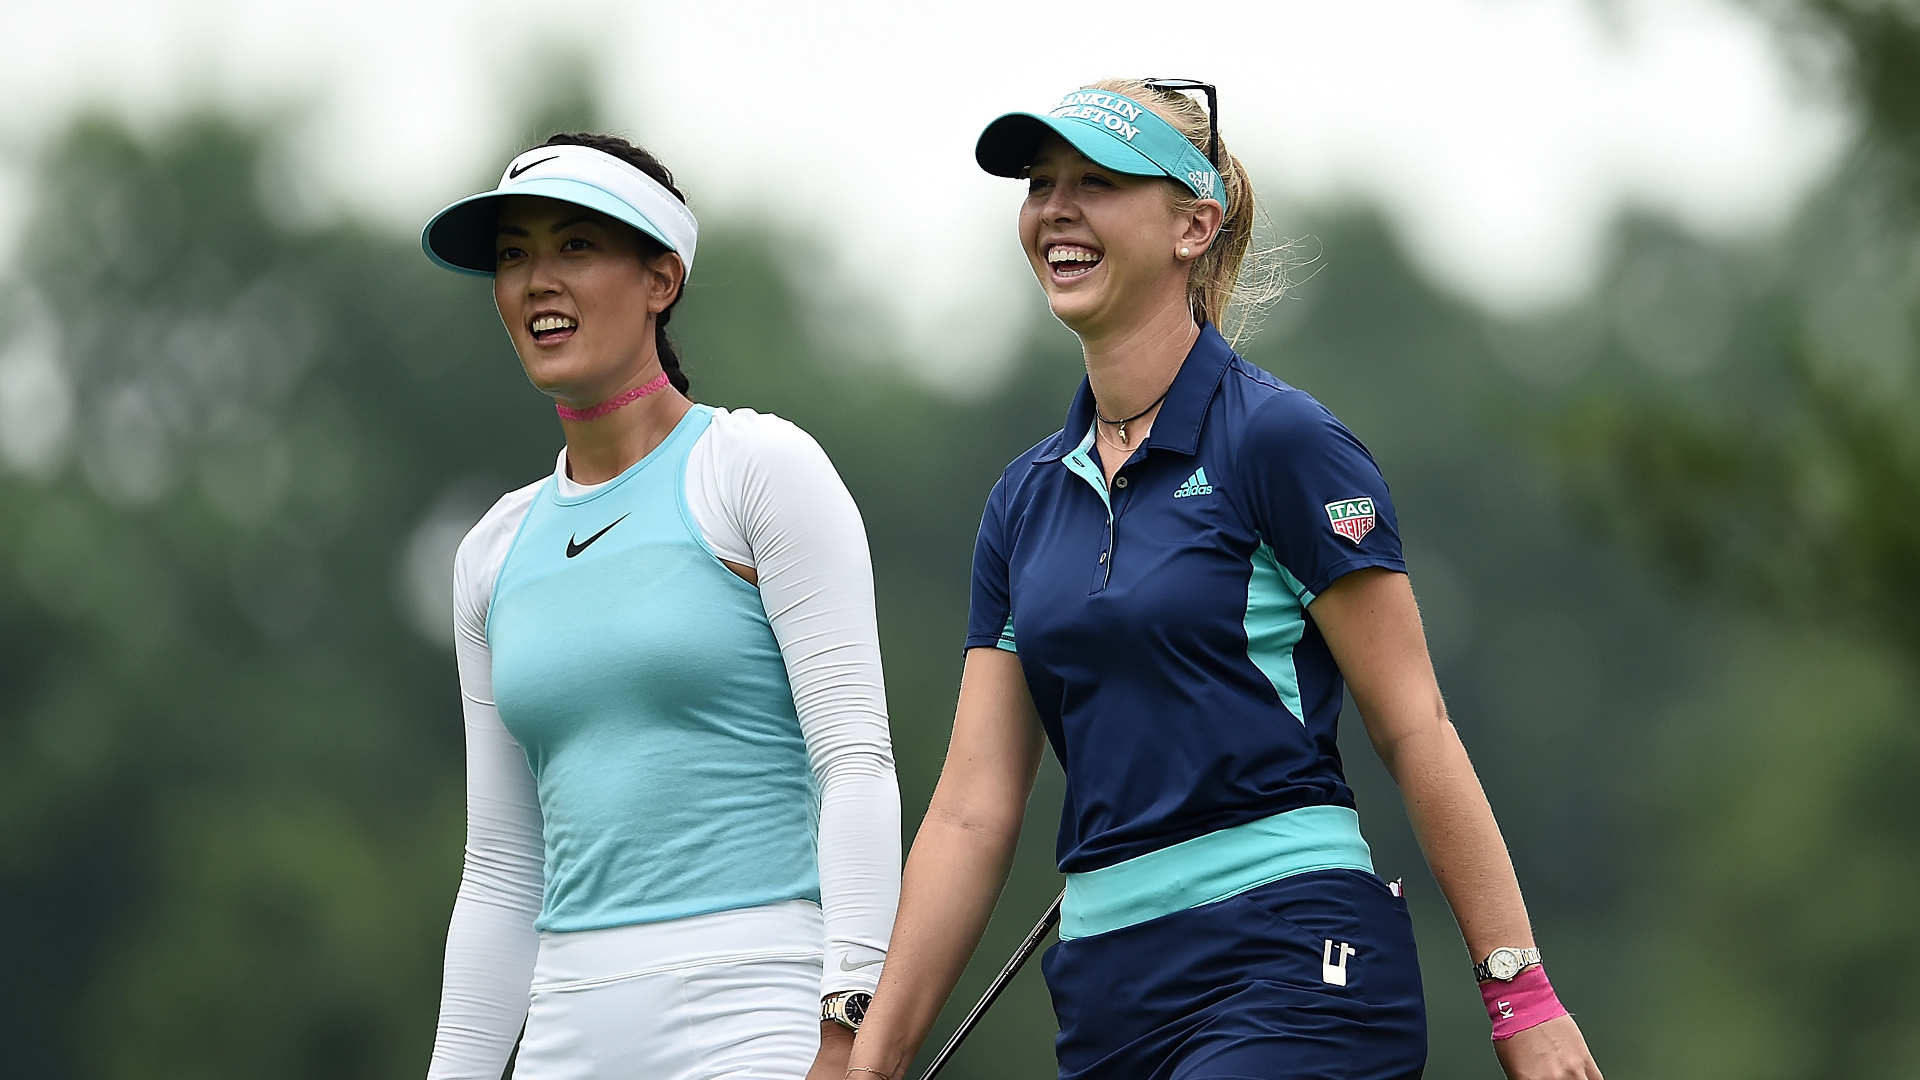 Michelle Wie Pga Tour Results